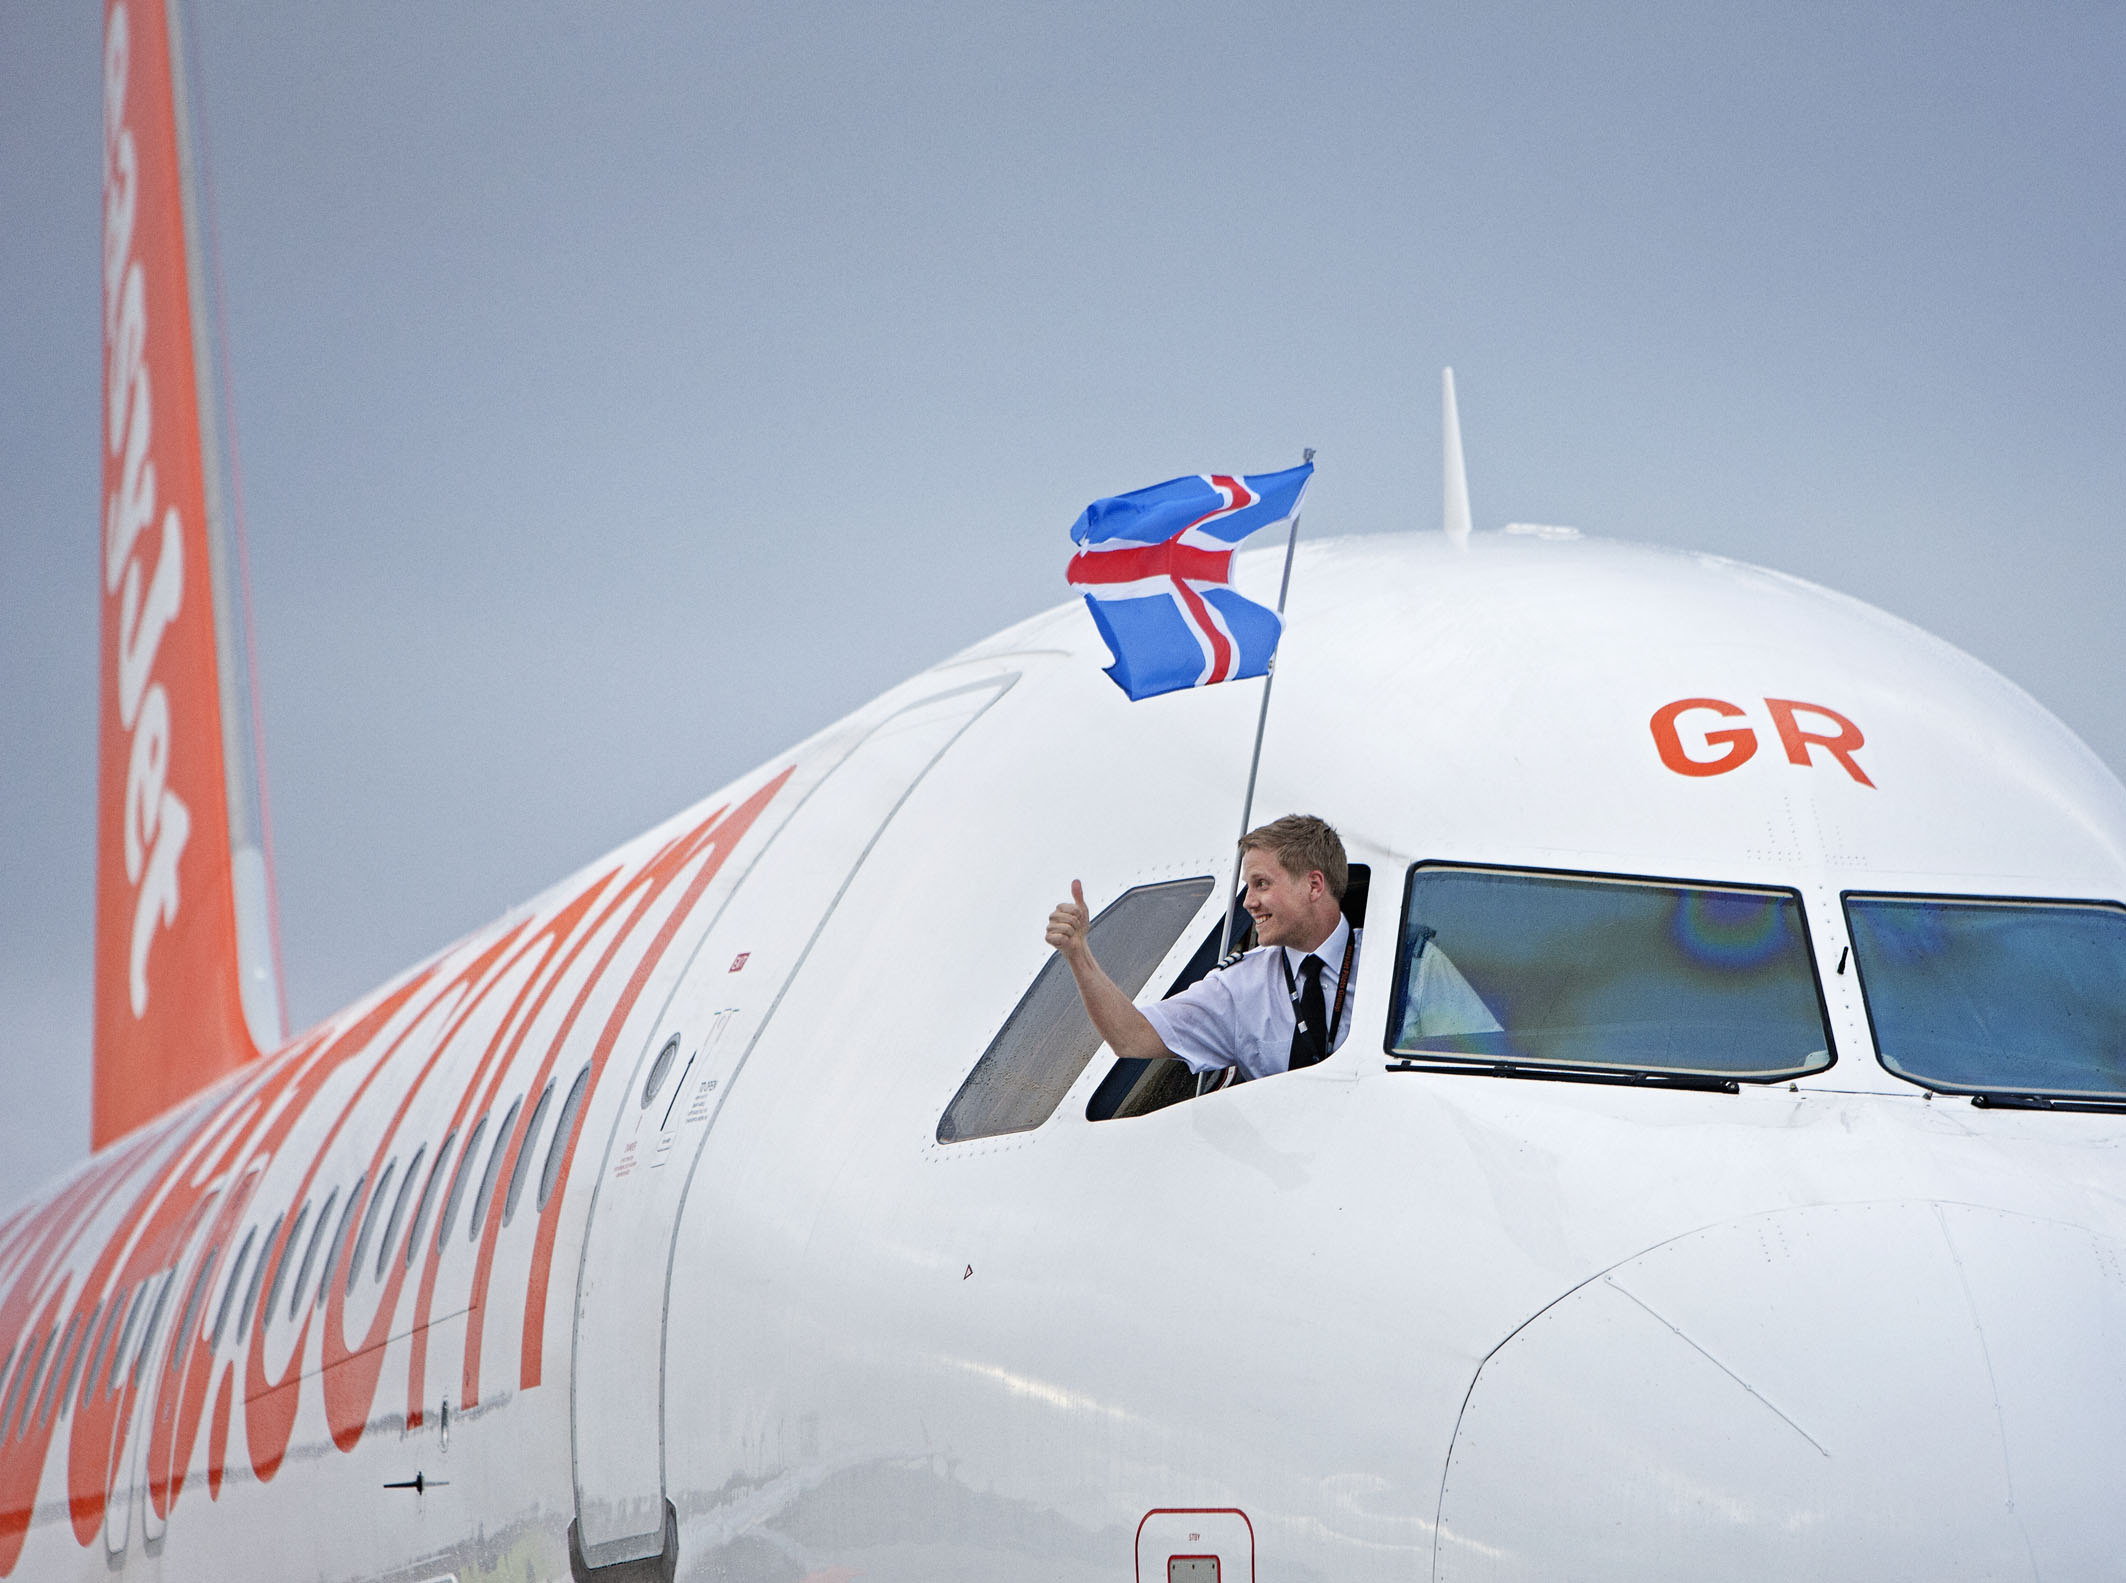 EasyJet's first flight to Iceland